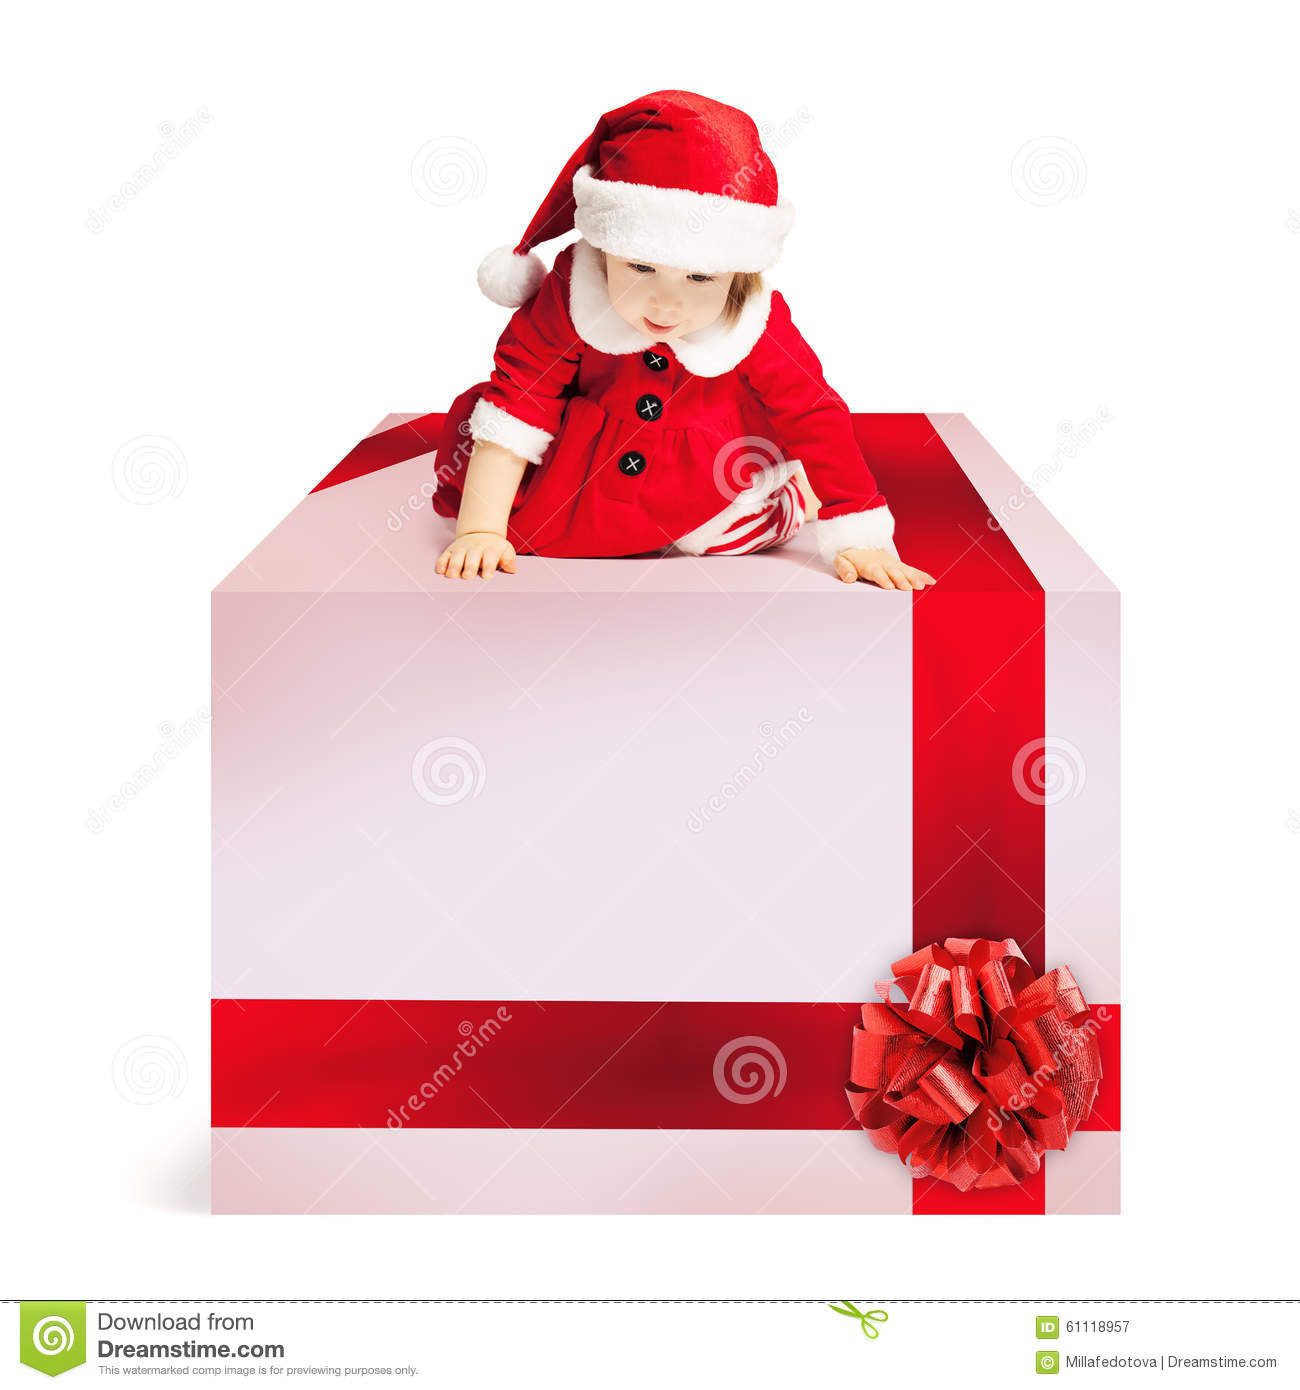 Christmas Gift Box And Baby In Santa Hat Stock Image - Image of ...